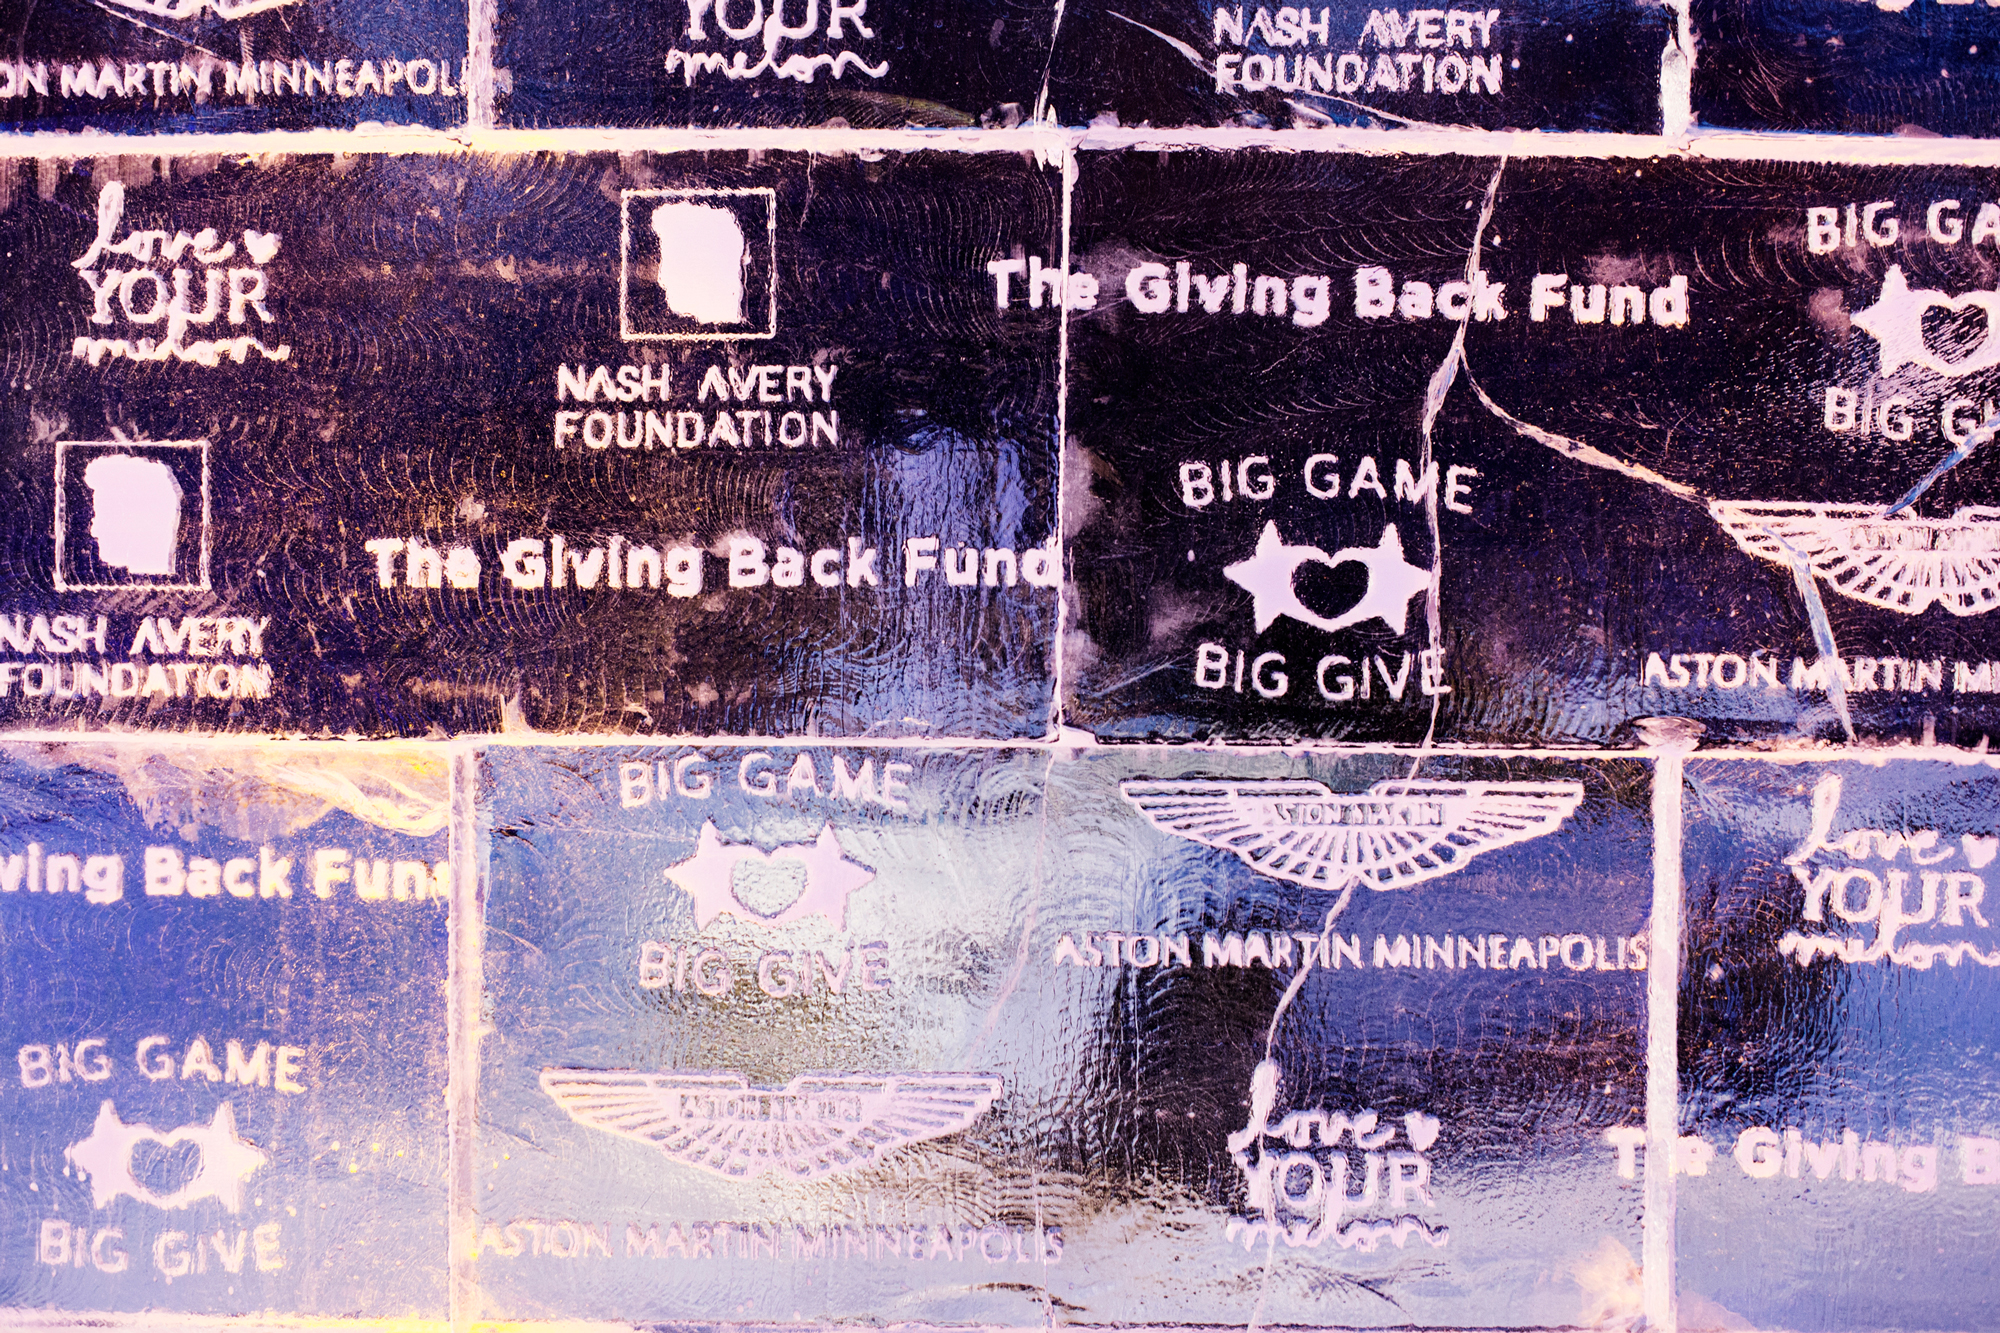 Amy Zaroff event planning for Big Game Big Give